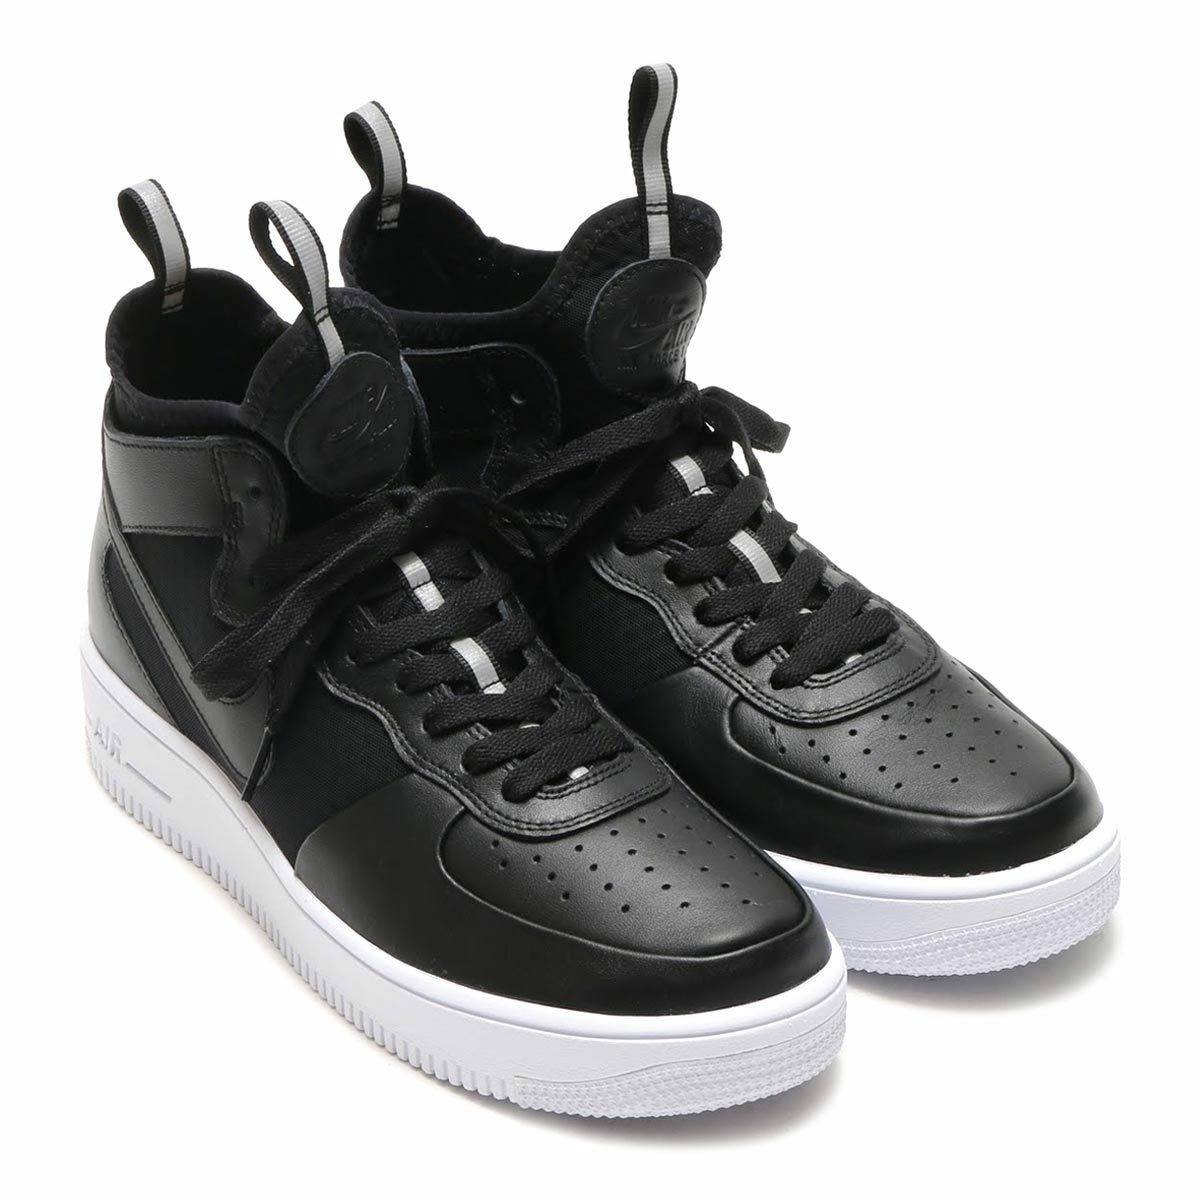 Nike Men NSW Air Force 1 Ultraforce Mid Casual Shoes Black 864014-001 US7-11 04'